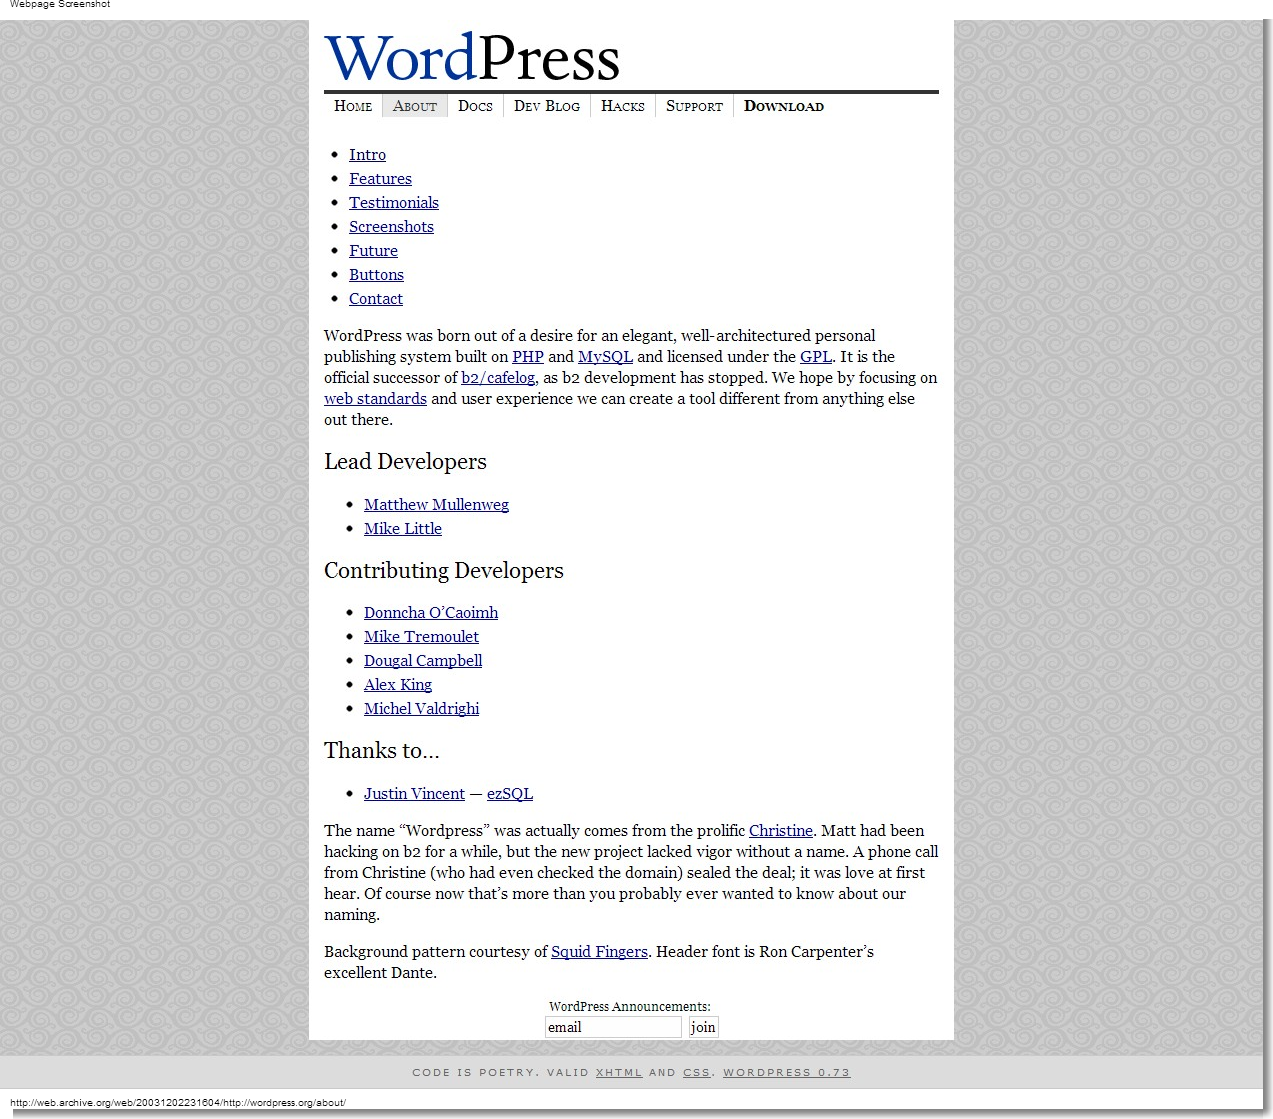 December 02, 2003 - WordPress - About